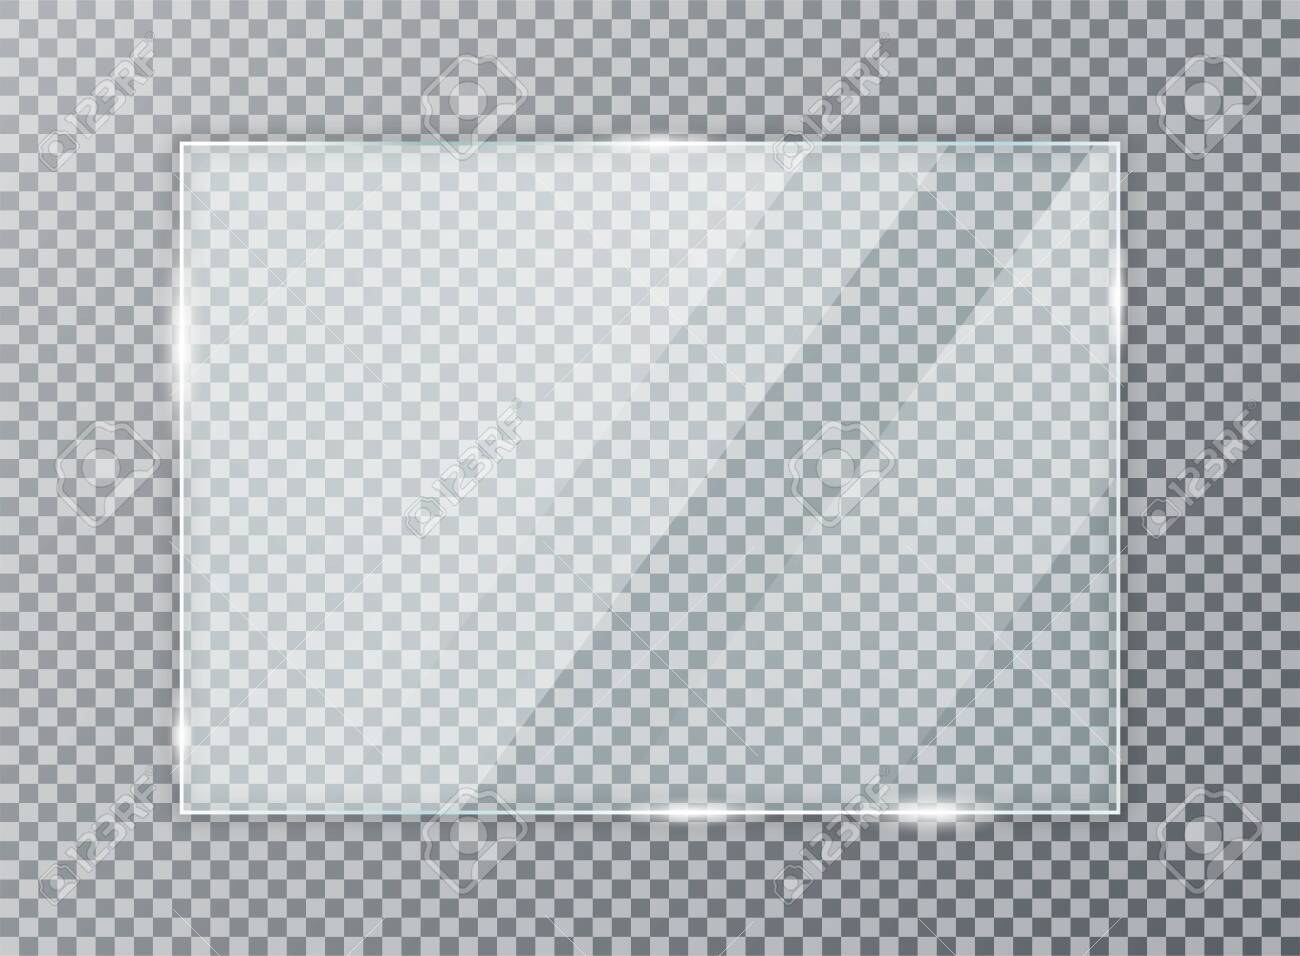 Glass Plate On Transparent Background Acrylic And Glass Texture Royalty Free Cliparts Vectors And Stock Illustration Image 128327682